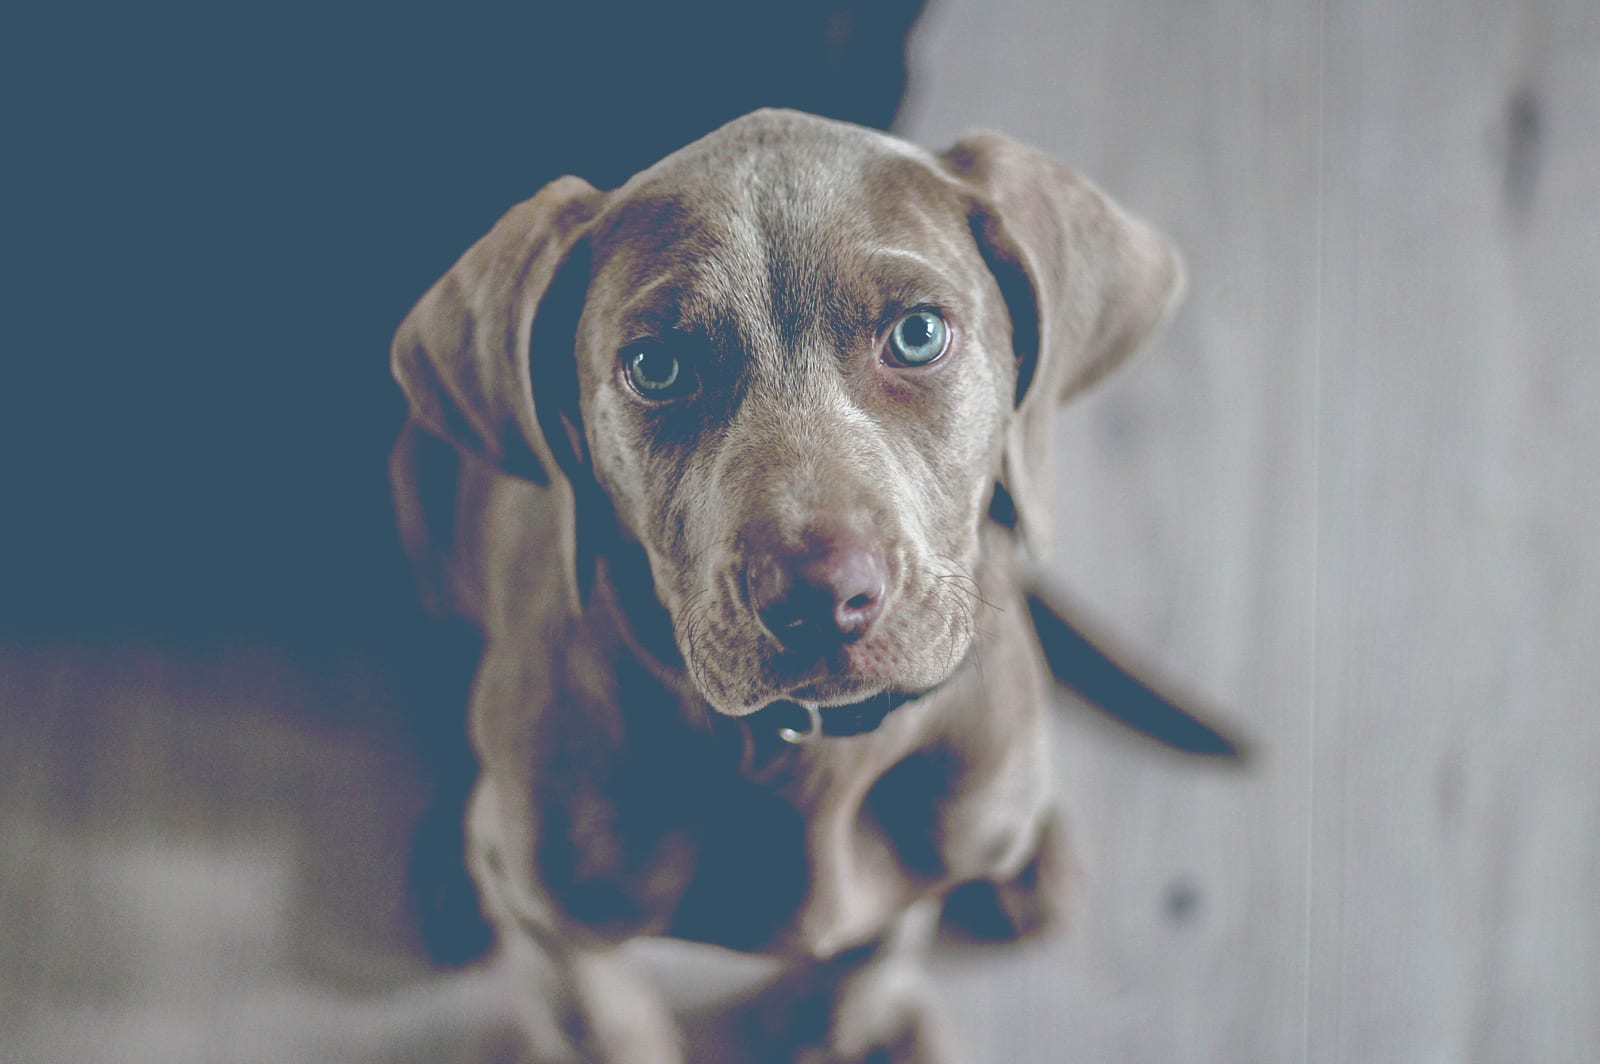 How To Pick a Puppy That Fits Your Lifestyle